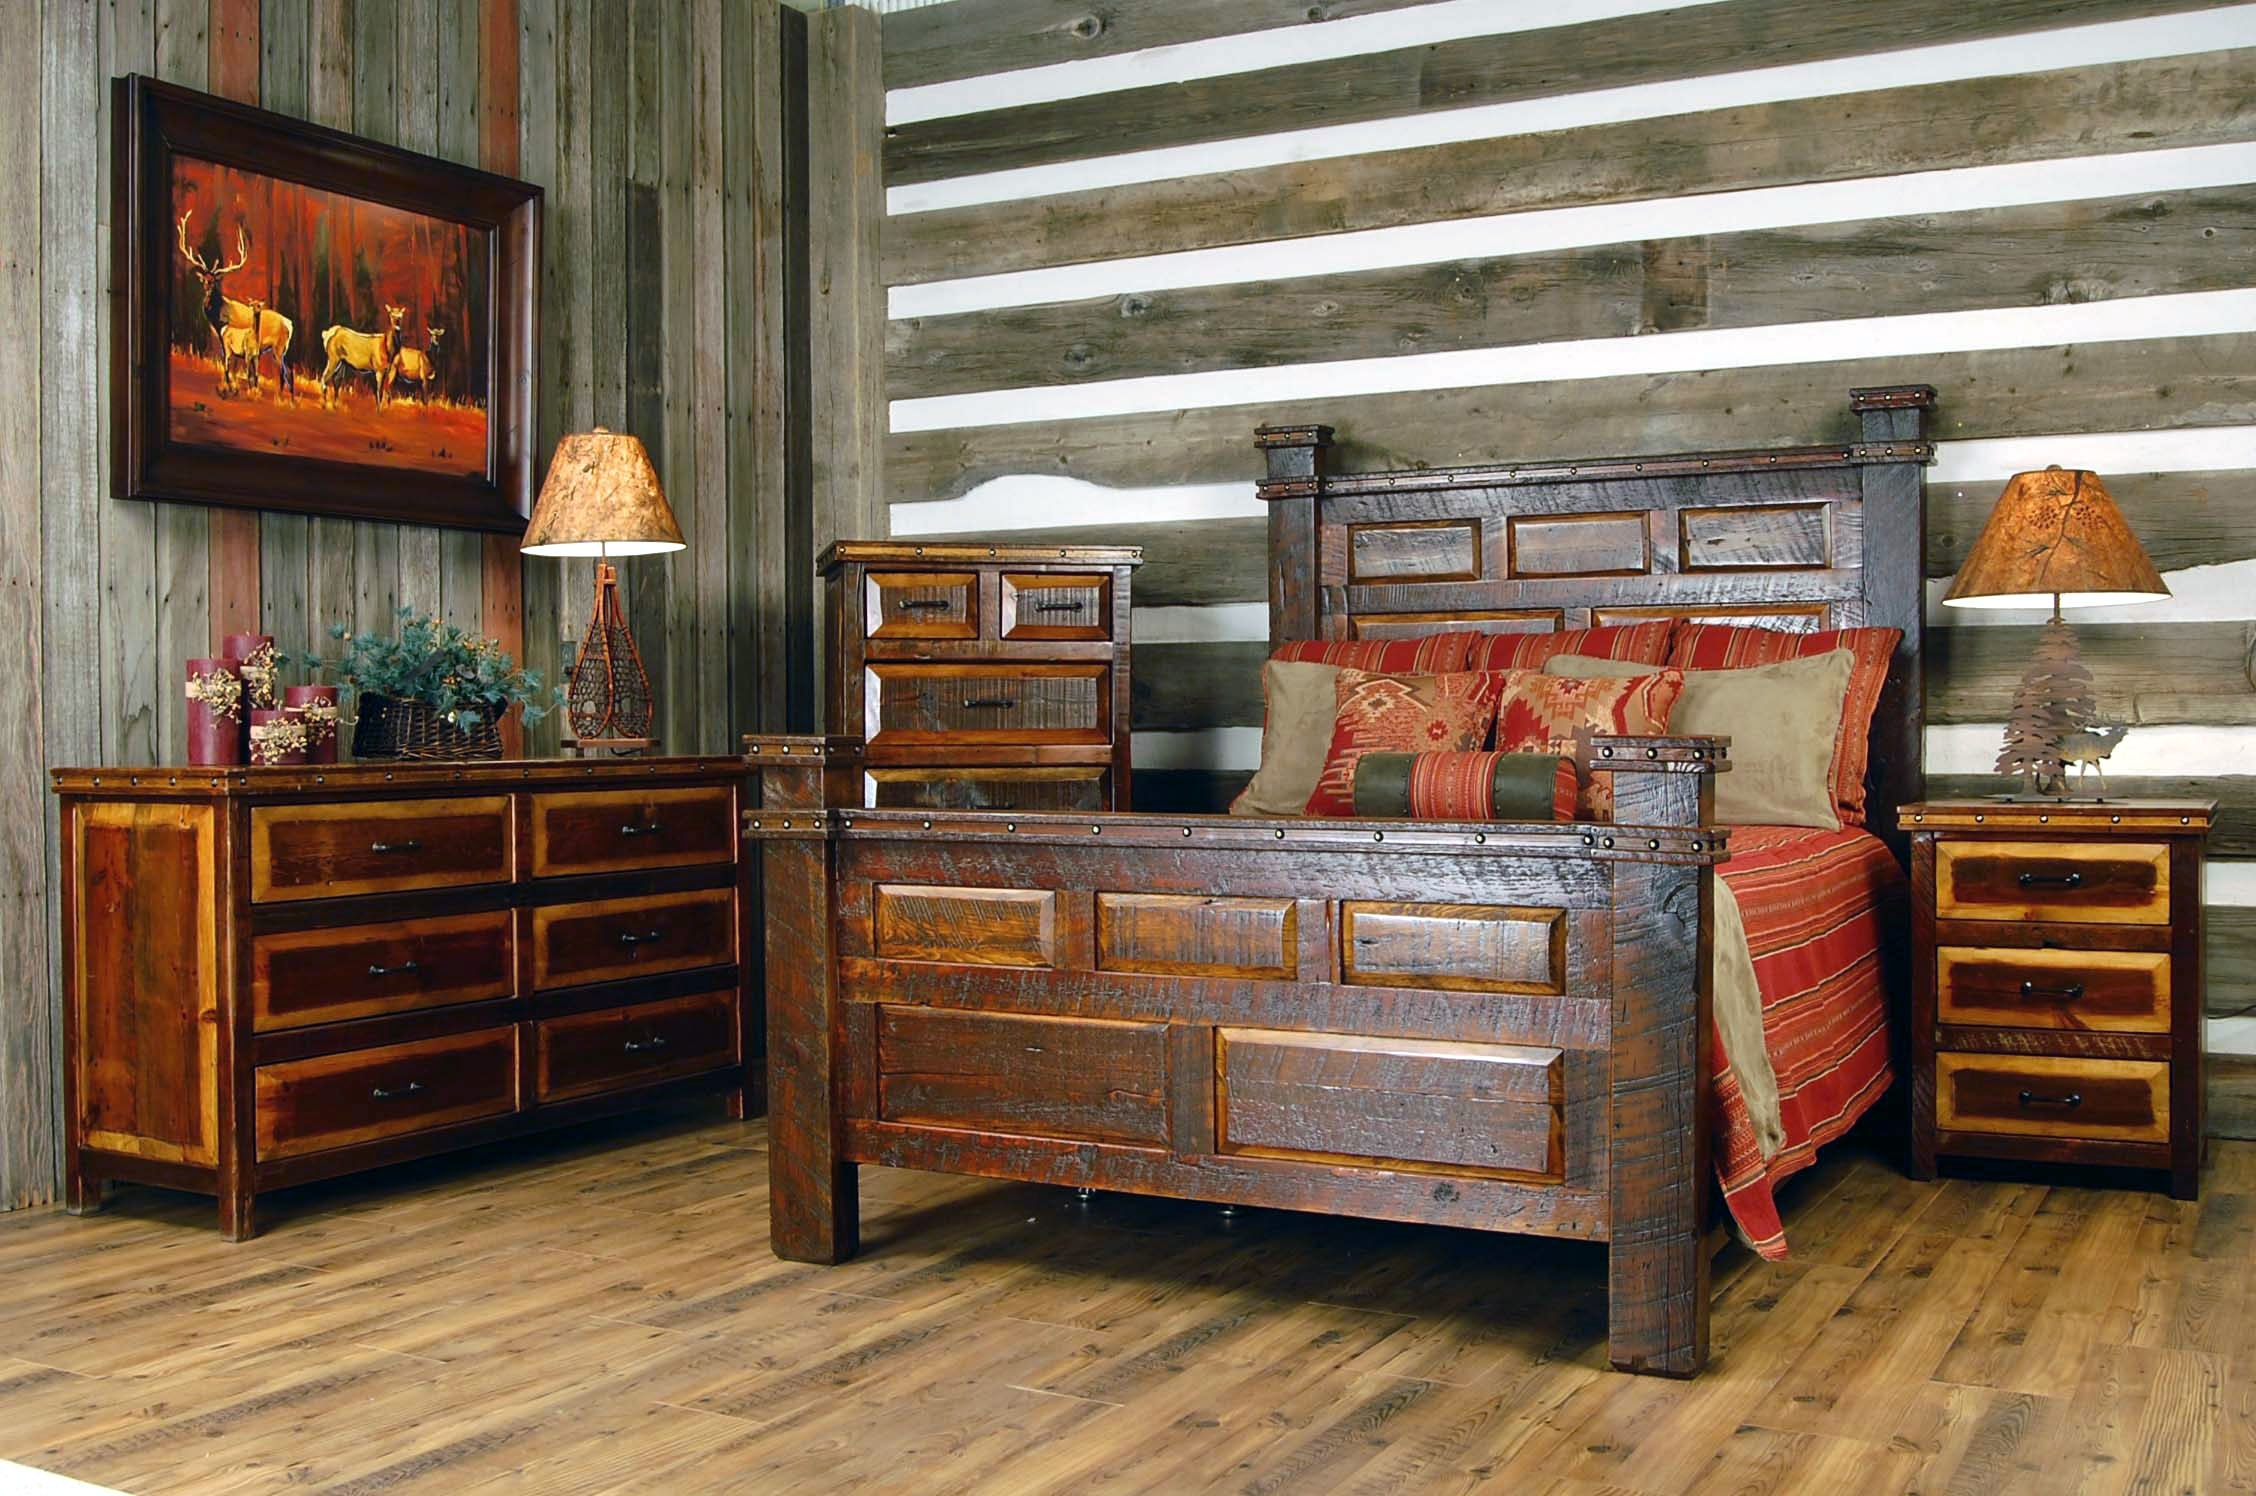 Image of: The Rustic Cabins Bedroom Decorating Ideas